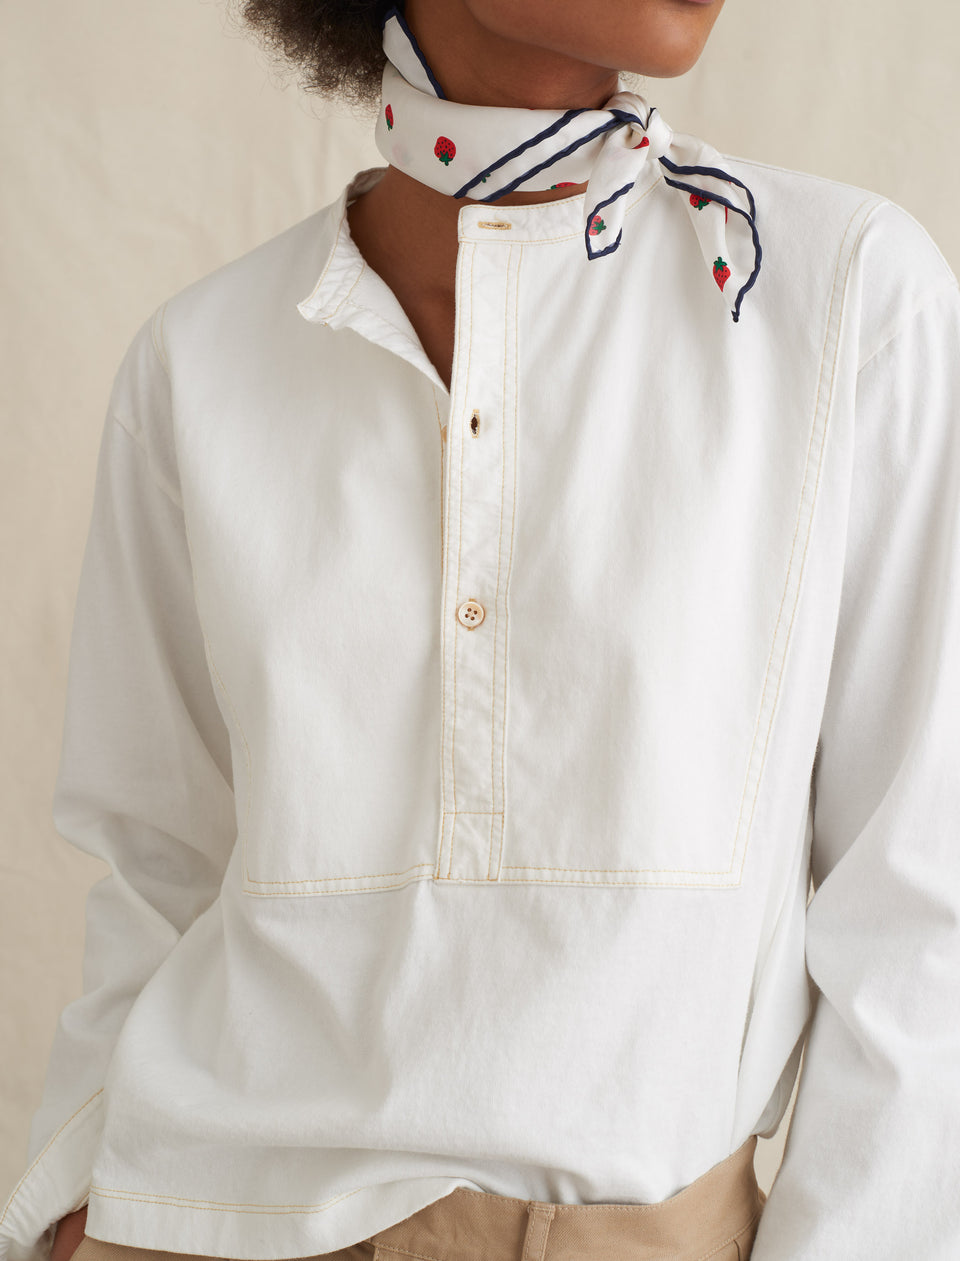 Pilgrim Henley Shirt in Jersey Cotton